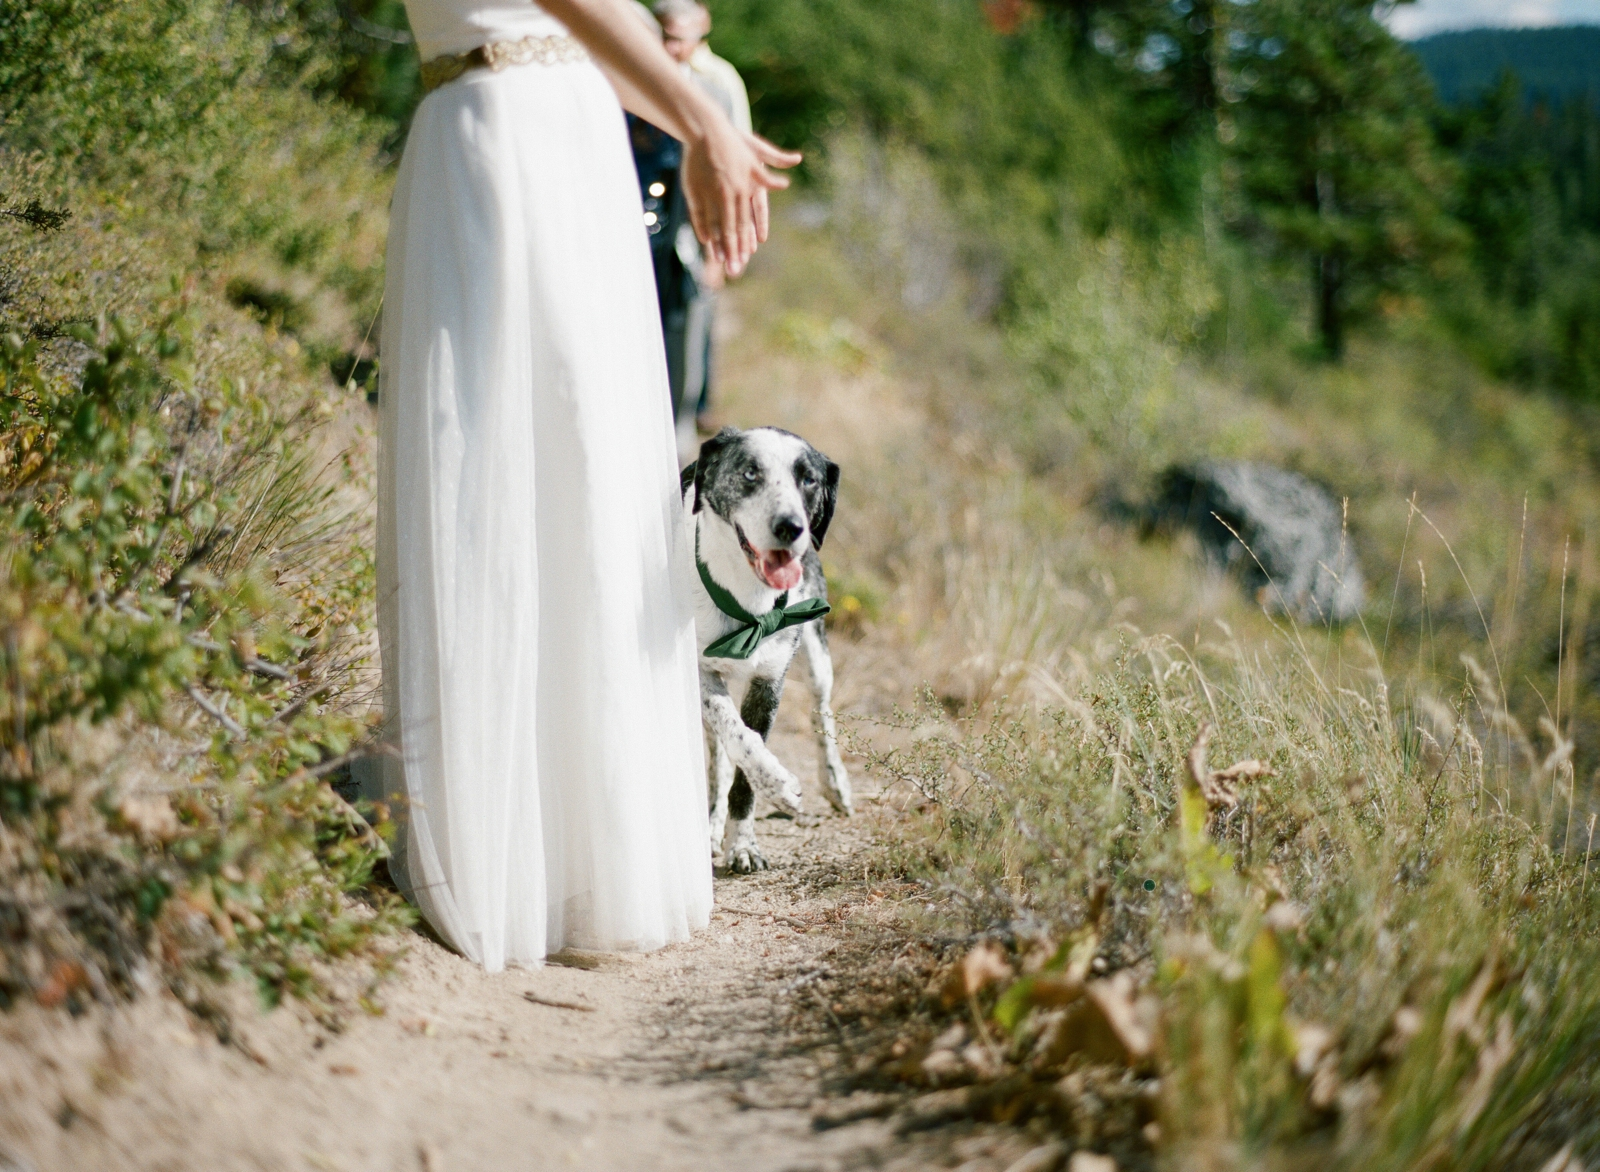 mt hood wedding photographer mt hood oregon wedding photographer shannon griffin_0061.jpg